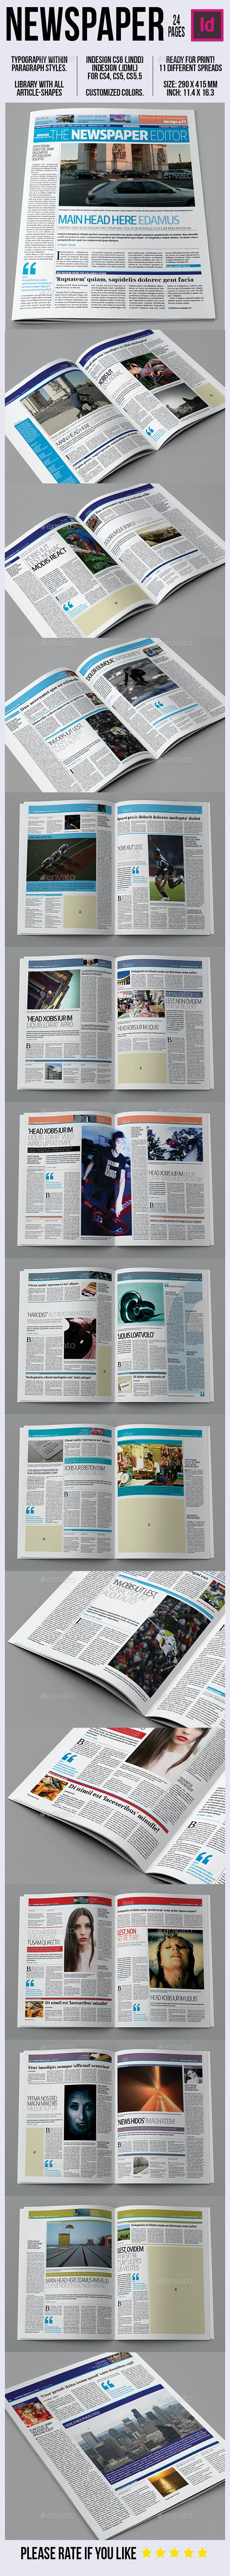 Newspaper 24 Pages - Newsletters Print Templates